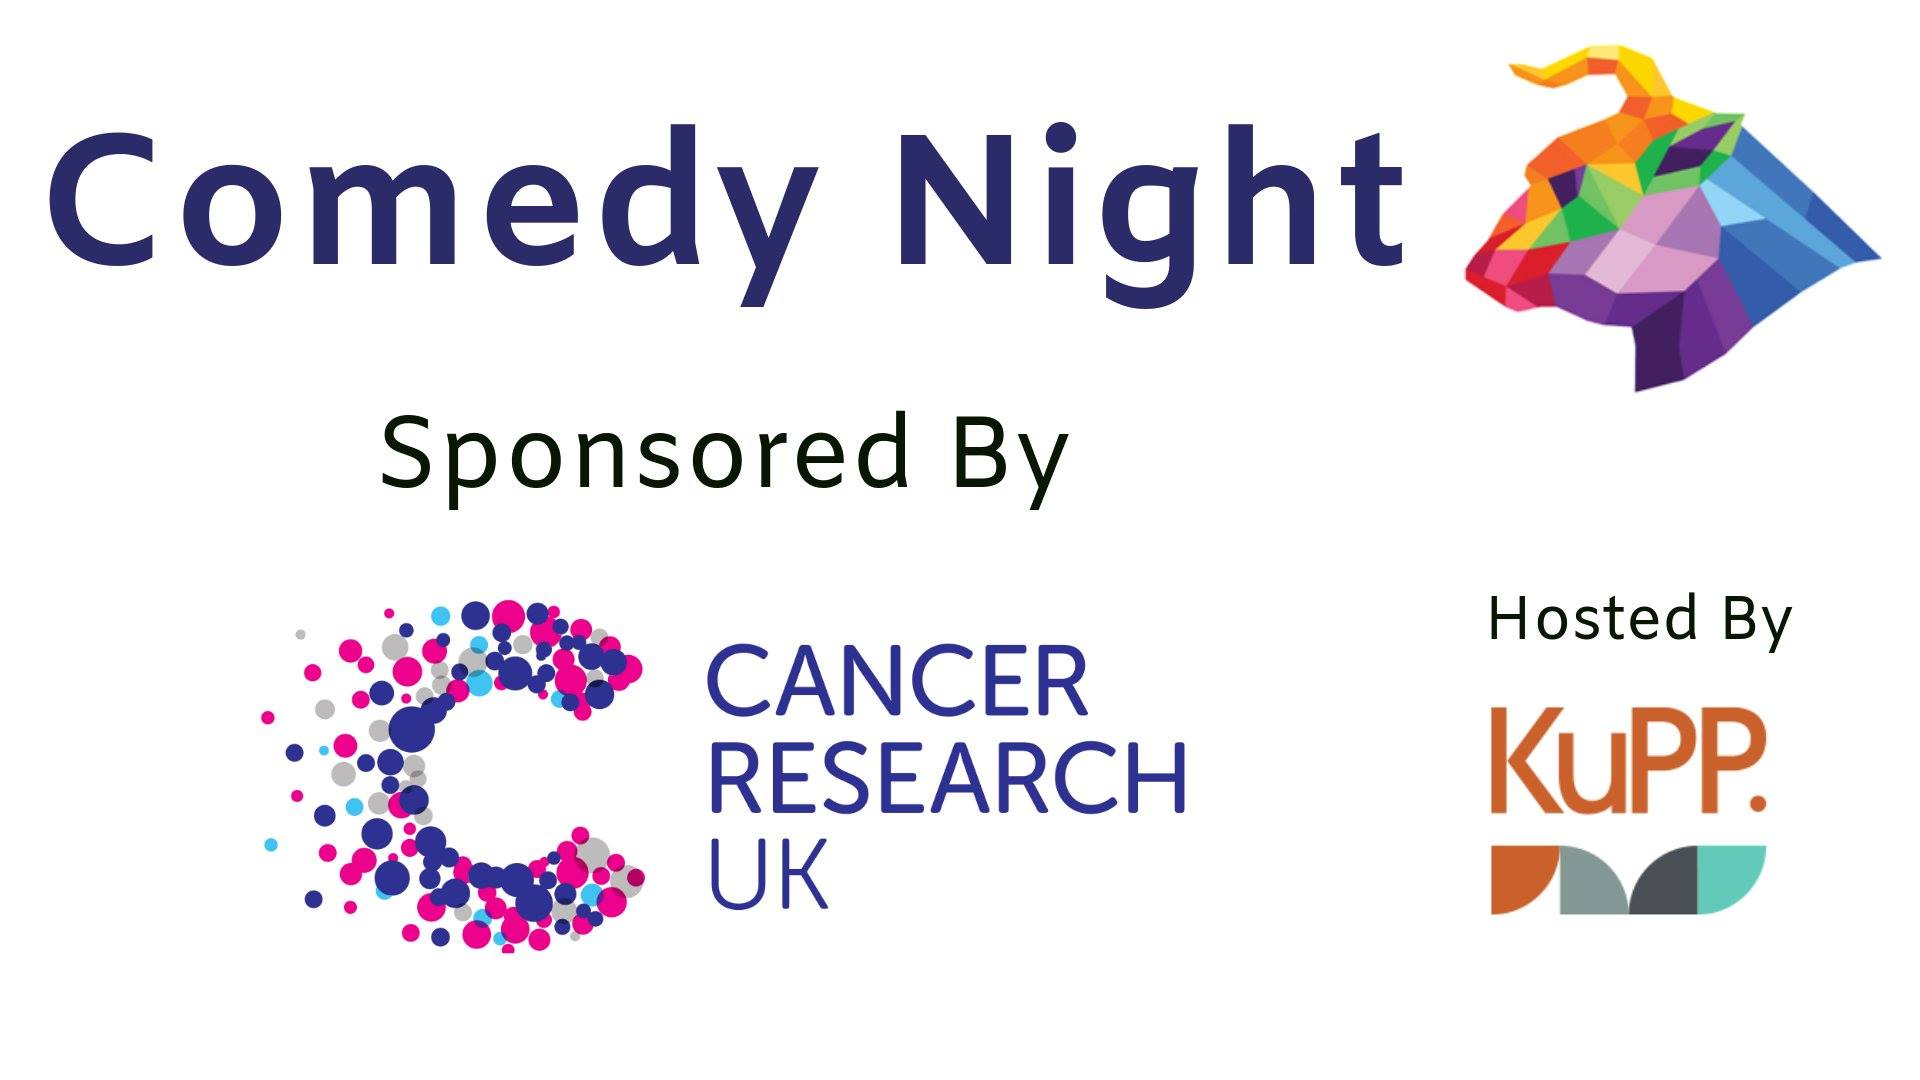 "We are proud to be teaming up with Oxford Pride to put on a night of comedy with some of Oxfordshire's wittiest stand ups and the talented folks that make Improv look easy.  All proceeds for this event go to benefit Oxford Pride.   Proceeds go towards Oxford Pride. Donation buckets will also be present at event.  Join Anna Dominey (MC) along with Iszi Lawrence Sarah Mann Sam Lake  And  Oxford Imps      Get Your Tickets Here!    Sam Lake , originally from Cornwall, is a London based Stand-Up Comedian. Described by  Chortle  as  ""A thoroughly engaging larger-than-life personality"" , Sam openly shares stories and details from his life as a semi-camp gay man, moving from a small mining village to a big city and gearing up to become a happily married man. Sam has been performing comedy for 4 years and has a racked up a number of achievements, winning  South Coast Comedian of the Year  in 2016,  Leicester Square Theatre's New Comedian of the Year 2018  and  Hastings Fringe Newcomer of the Year   2018.  He was also   nominated for the  BBC New Comedy Award  in 2017.   BBC New Comedy Award 2018 finalist , Runner up in  2017's So You Think You're Funny? competition ,  Funny Women Regional Finalist  and  Leicester Square New Comedian Semi-finalist ,  Sarah Mann  is a regular on the Oxford comedy scene. Producer and MC at  QED Comedy Lab's  monthly night at  Tap Social  and a regular player at  It's Debatable!,  a monthly improvised debating show.  As heard on  BBC Radio Oxford ,  Anna Dominey  was noted as ' One to Watch'  the  Funny Women Awards  in 2016. In the same year she was also a finalist for  Riproar Comedy Gladiators.  Since then she has appeared as a semi-finalist in the  Leicester Square New Comedian  competition, both in 2016 & 2017, as well as  Bath New Act  competition, in 2018.   Iszi Lawrence , Comedian, BBC Radio 4 Making History Presenter, Host Of The British Museum Membercast and The Z List Dead List Podcast.  ""Like Horrible Histories for adults""  Nottingham Live Metro and The Evening Standard Recommended"